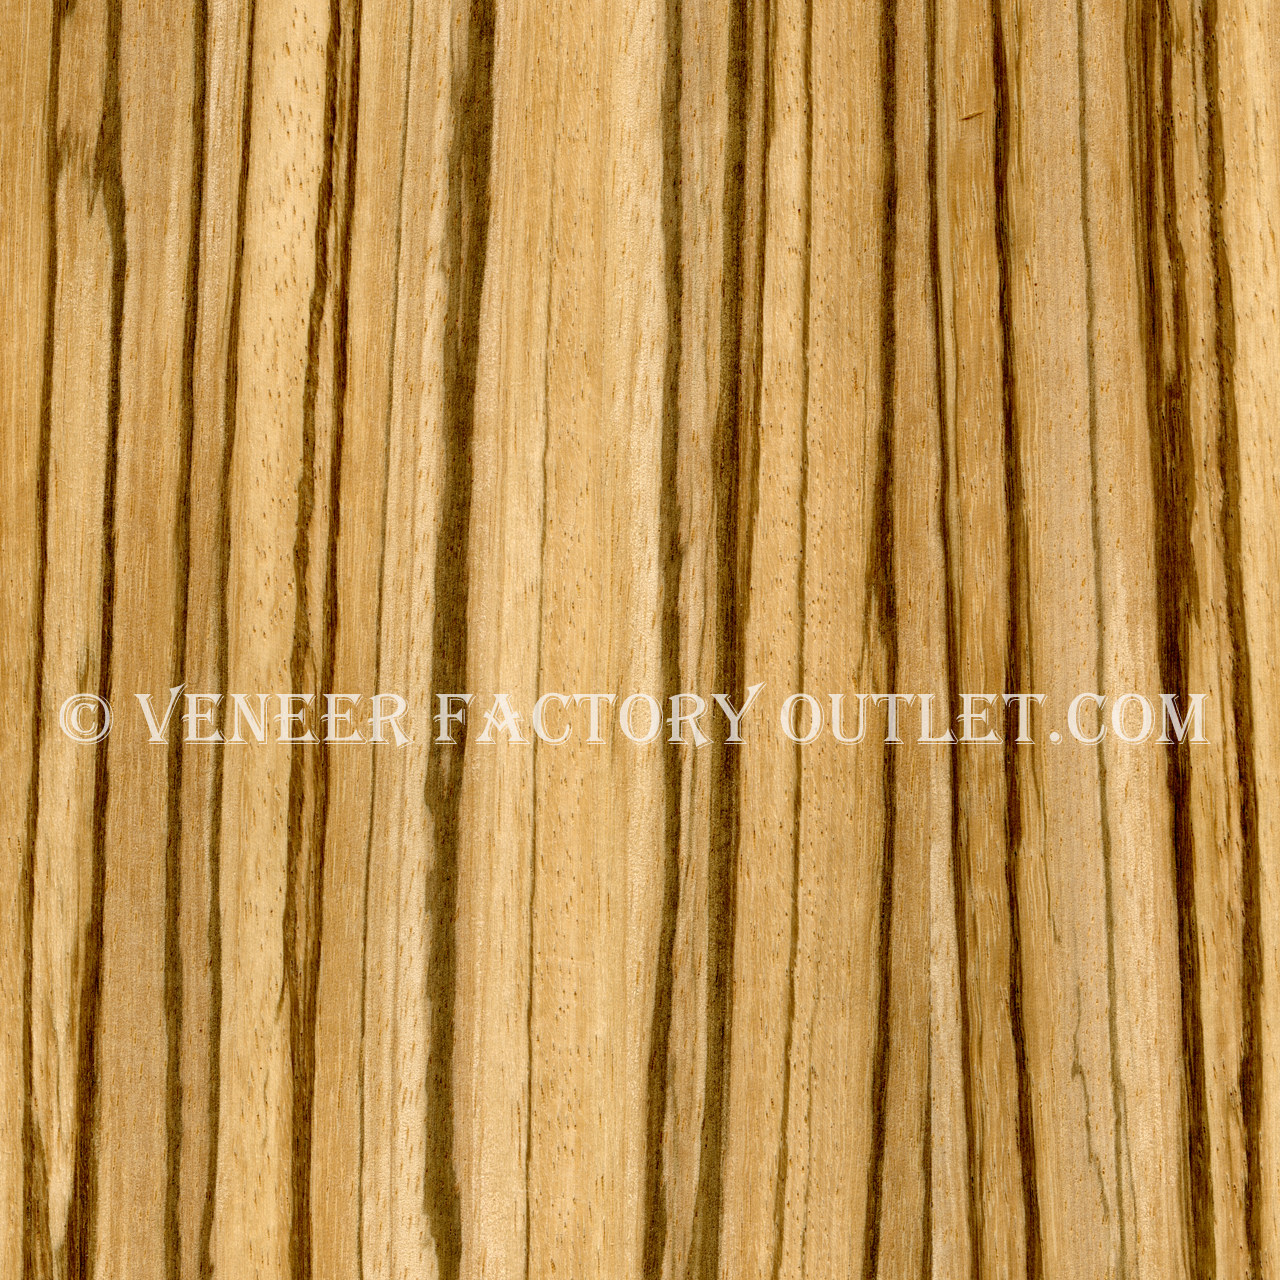 Zebrawood Veneer Sheets Savings At Zebrawood Veneer Outlet Com